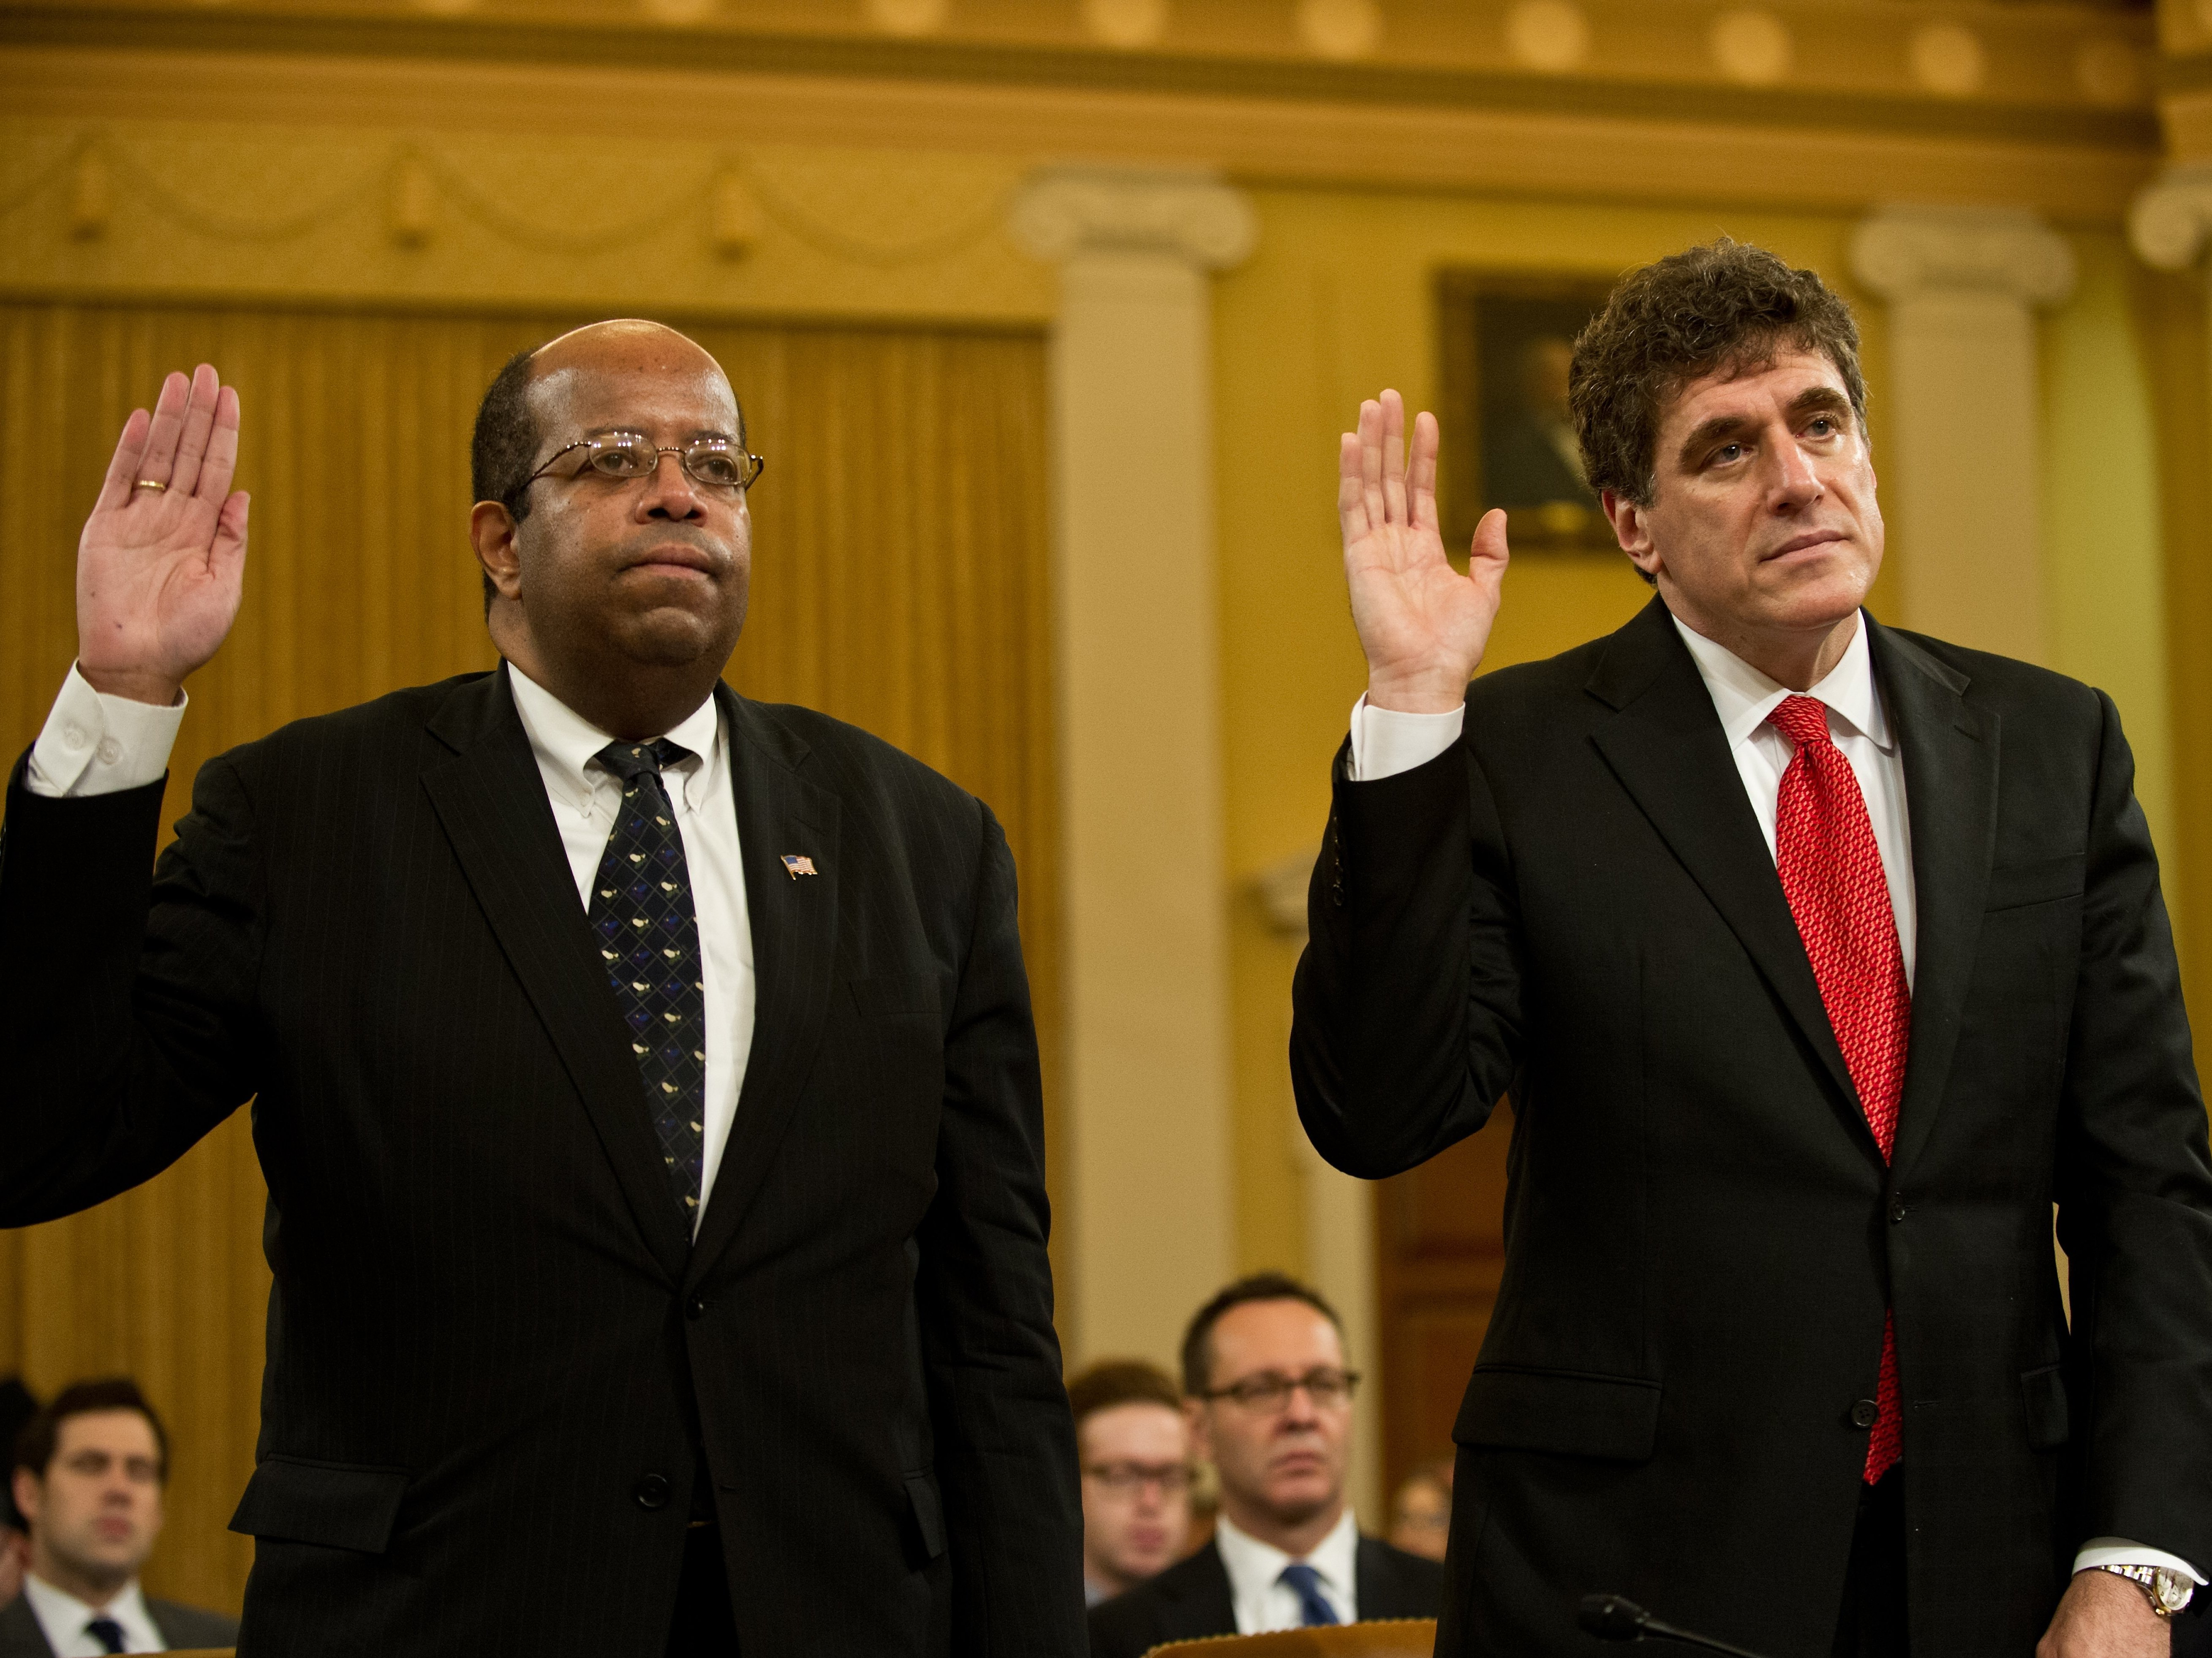 Inspector General Changes Tune On IRS Scandal